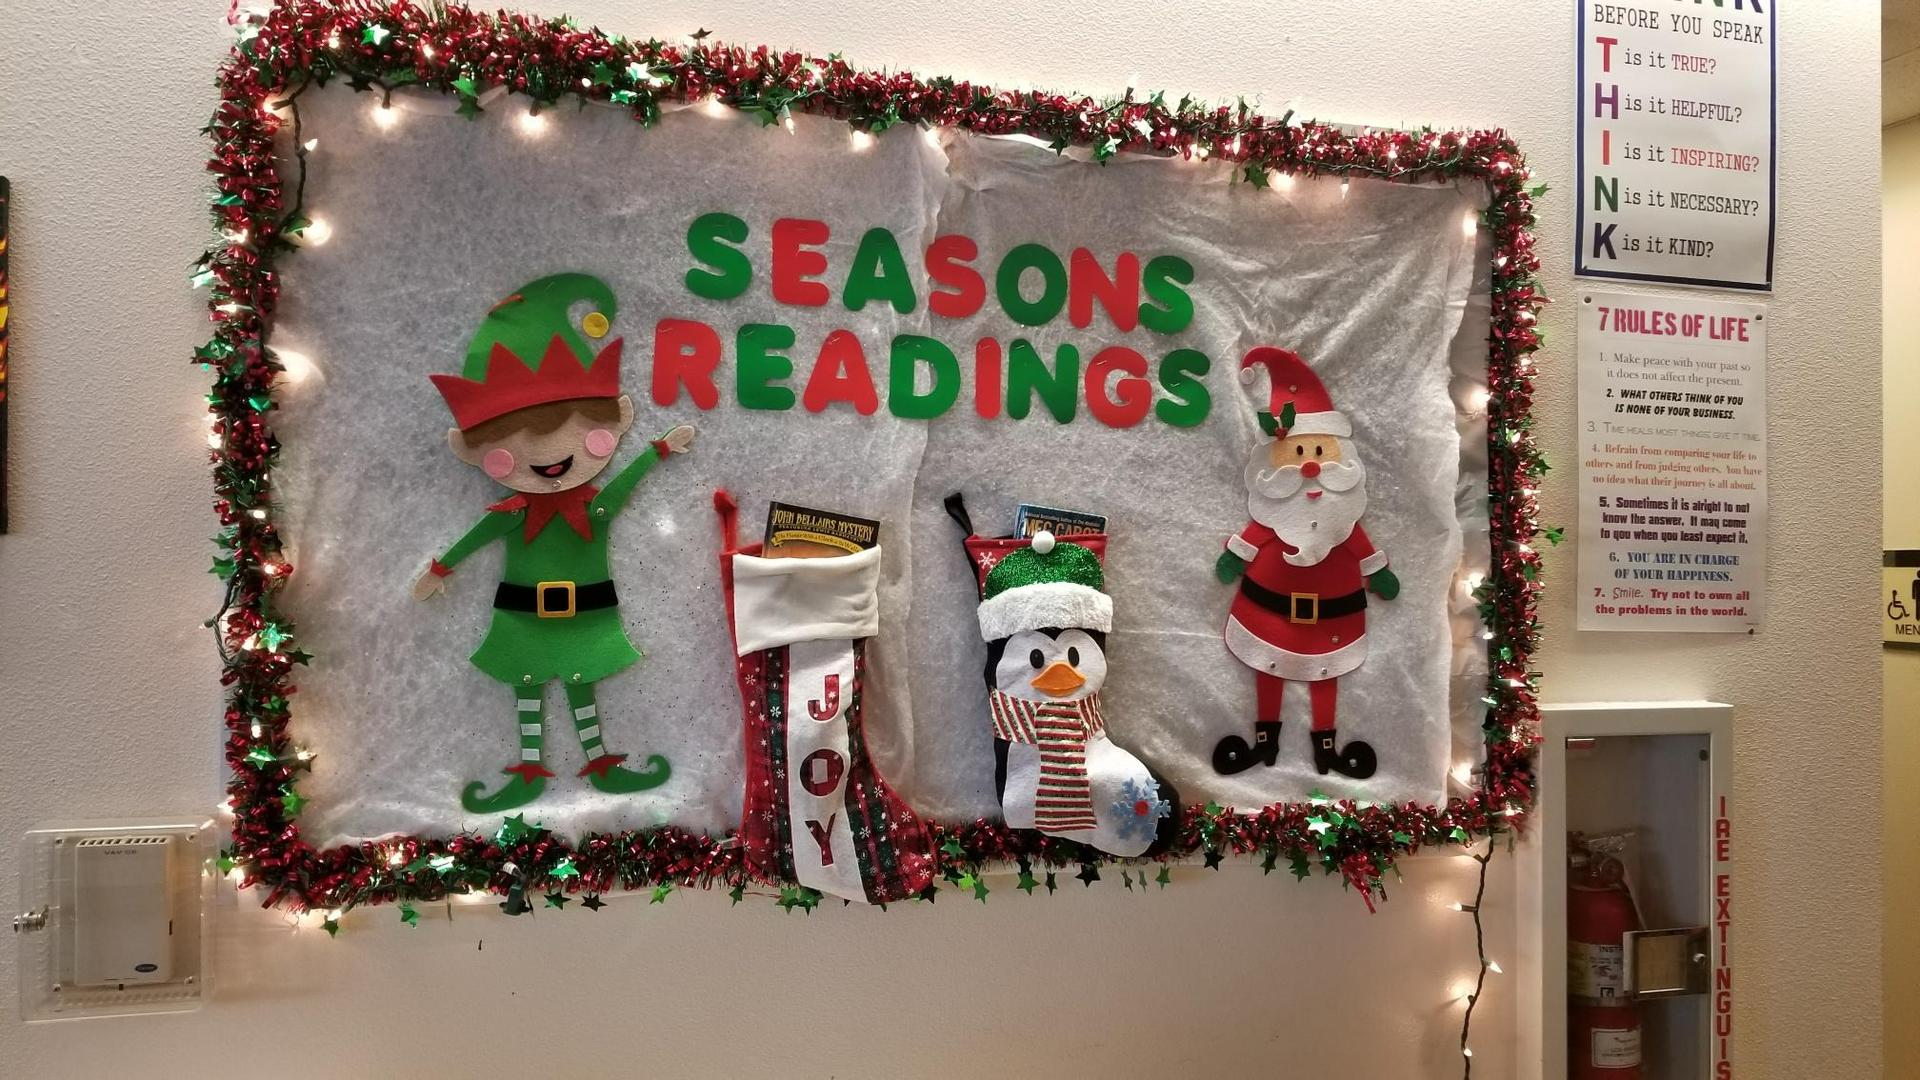 Christmas Time in the Library